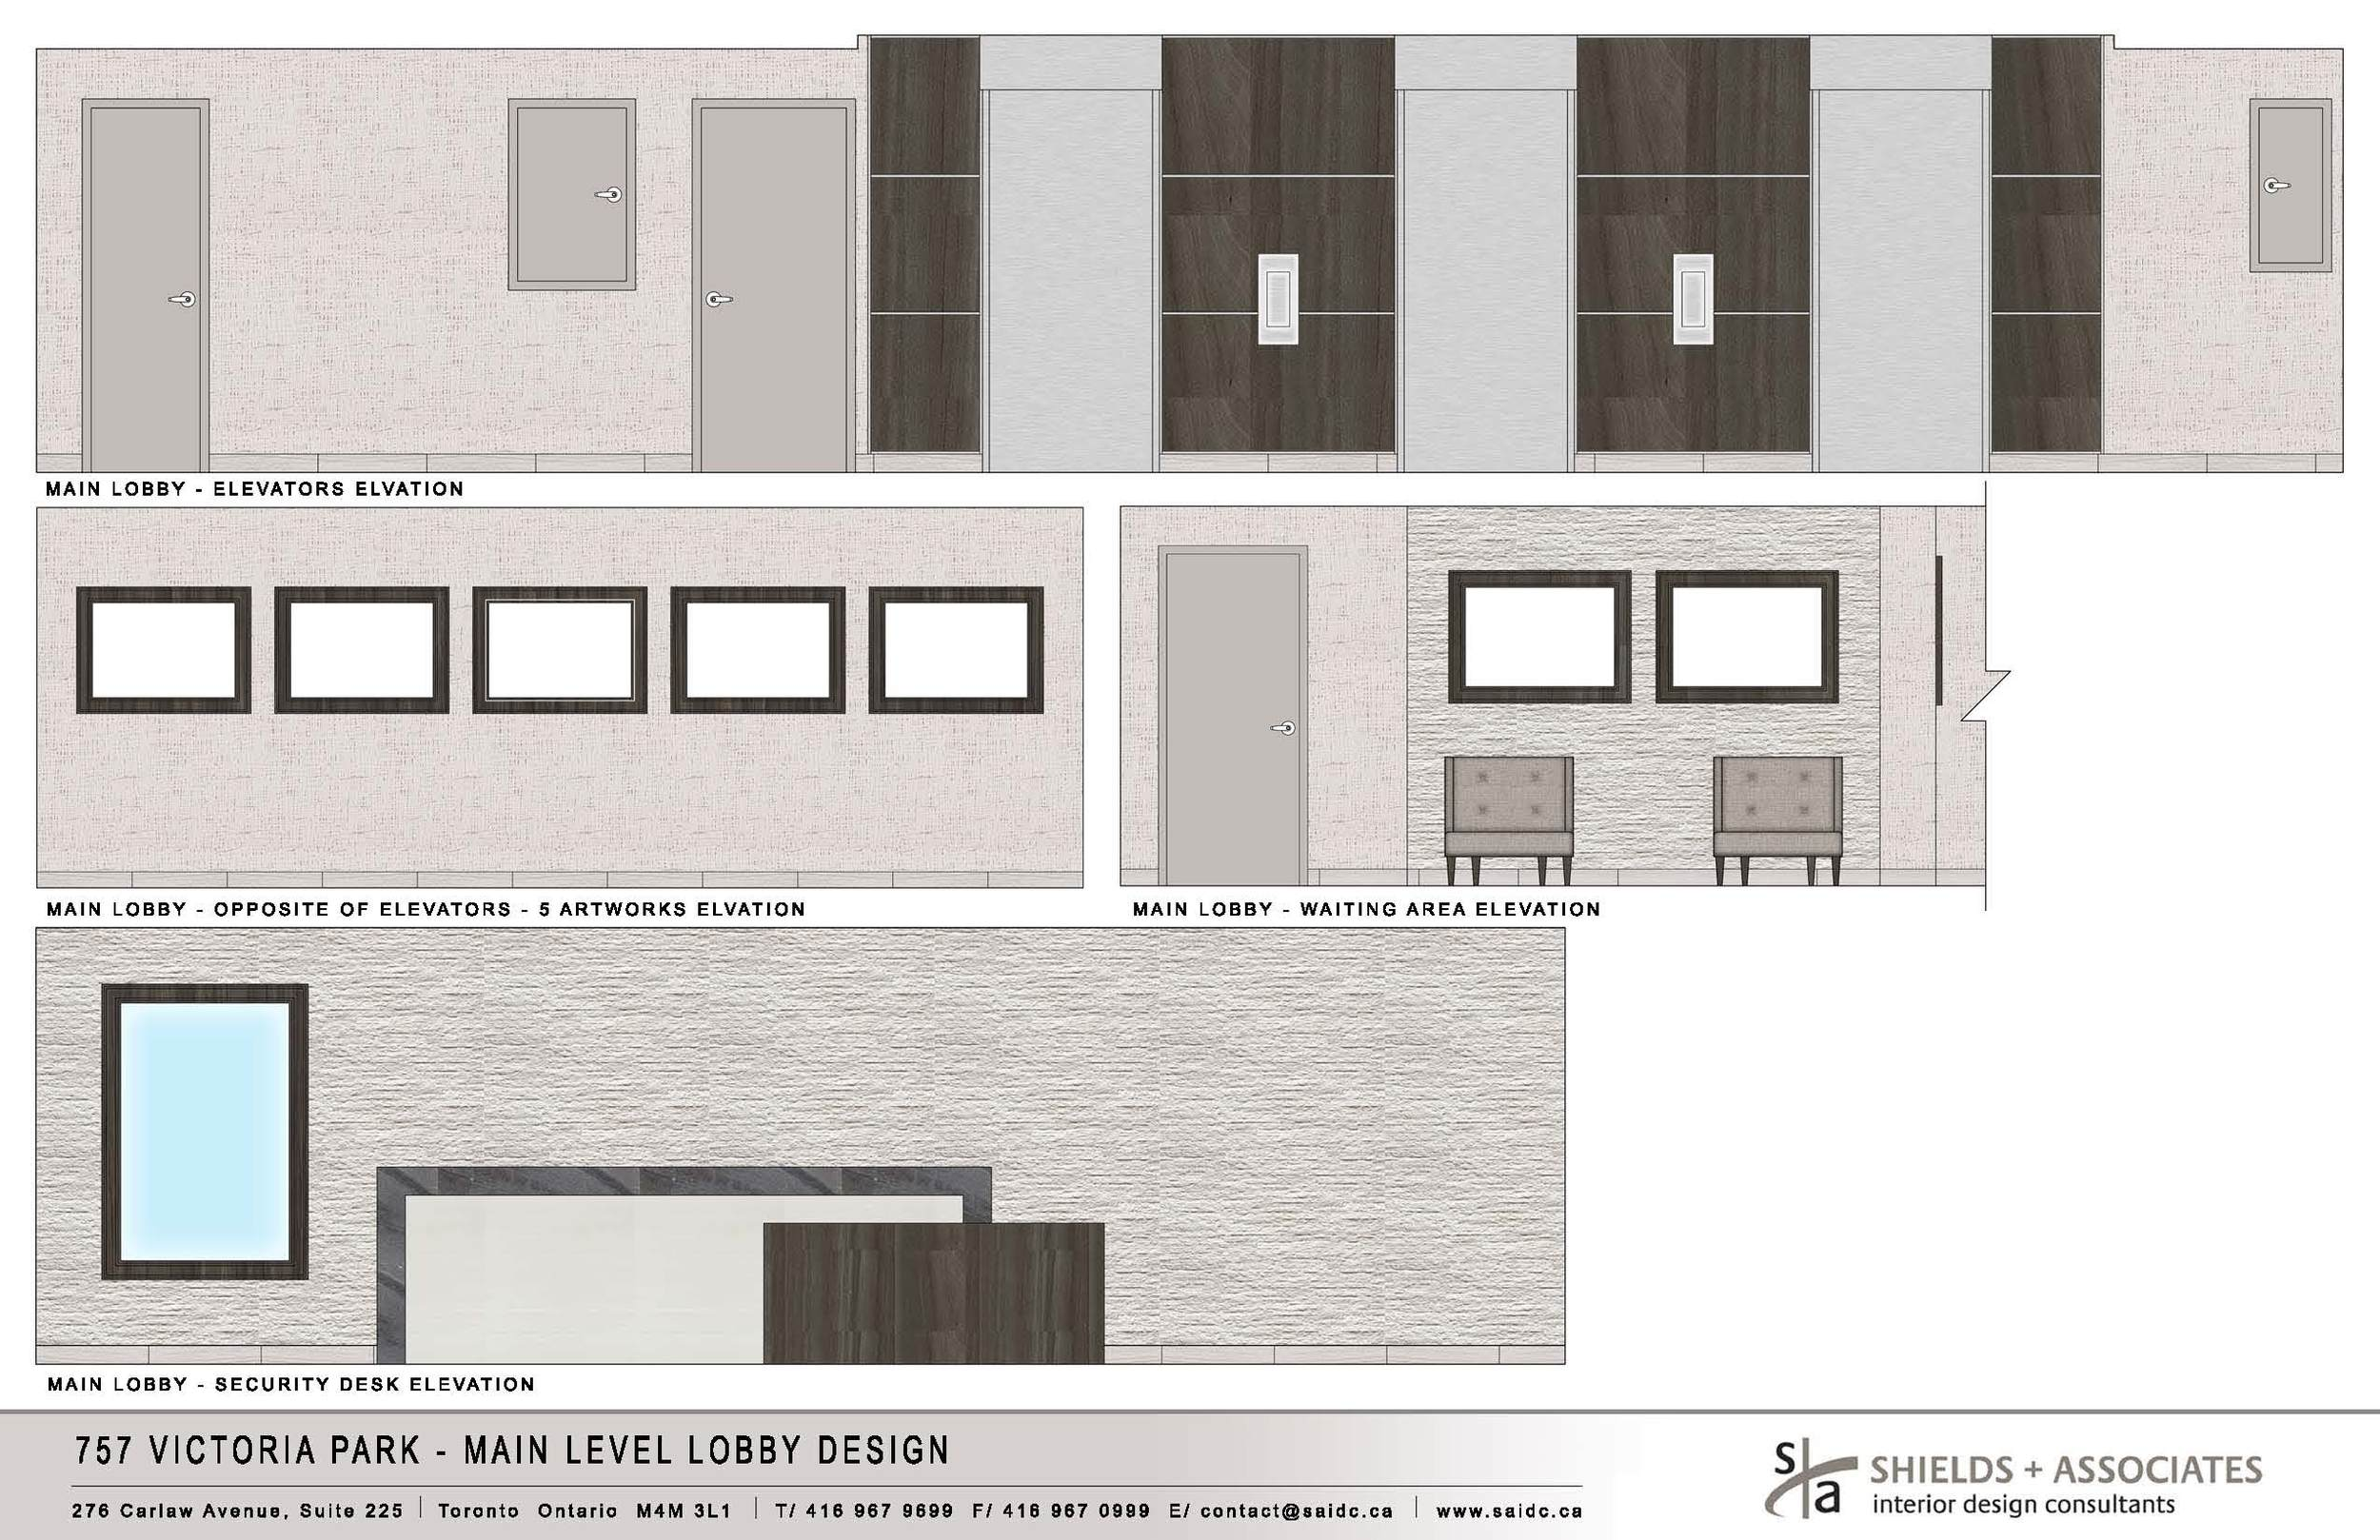 Approved Design Board - Main Level Lobby